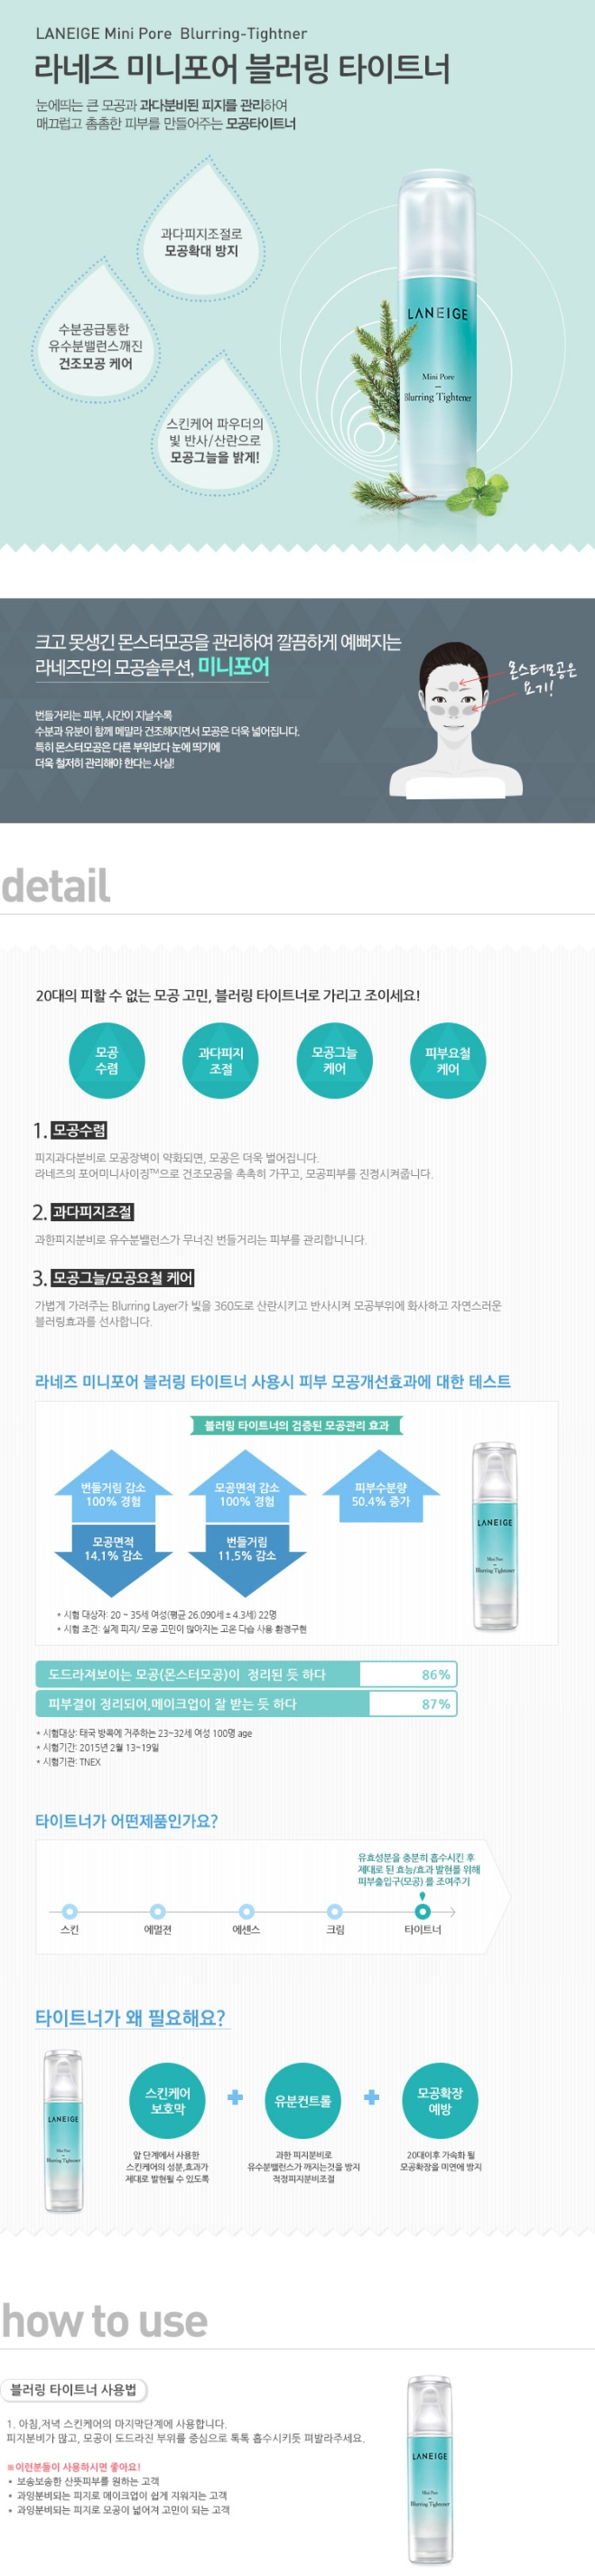 Credit: Laneige Korea website